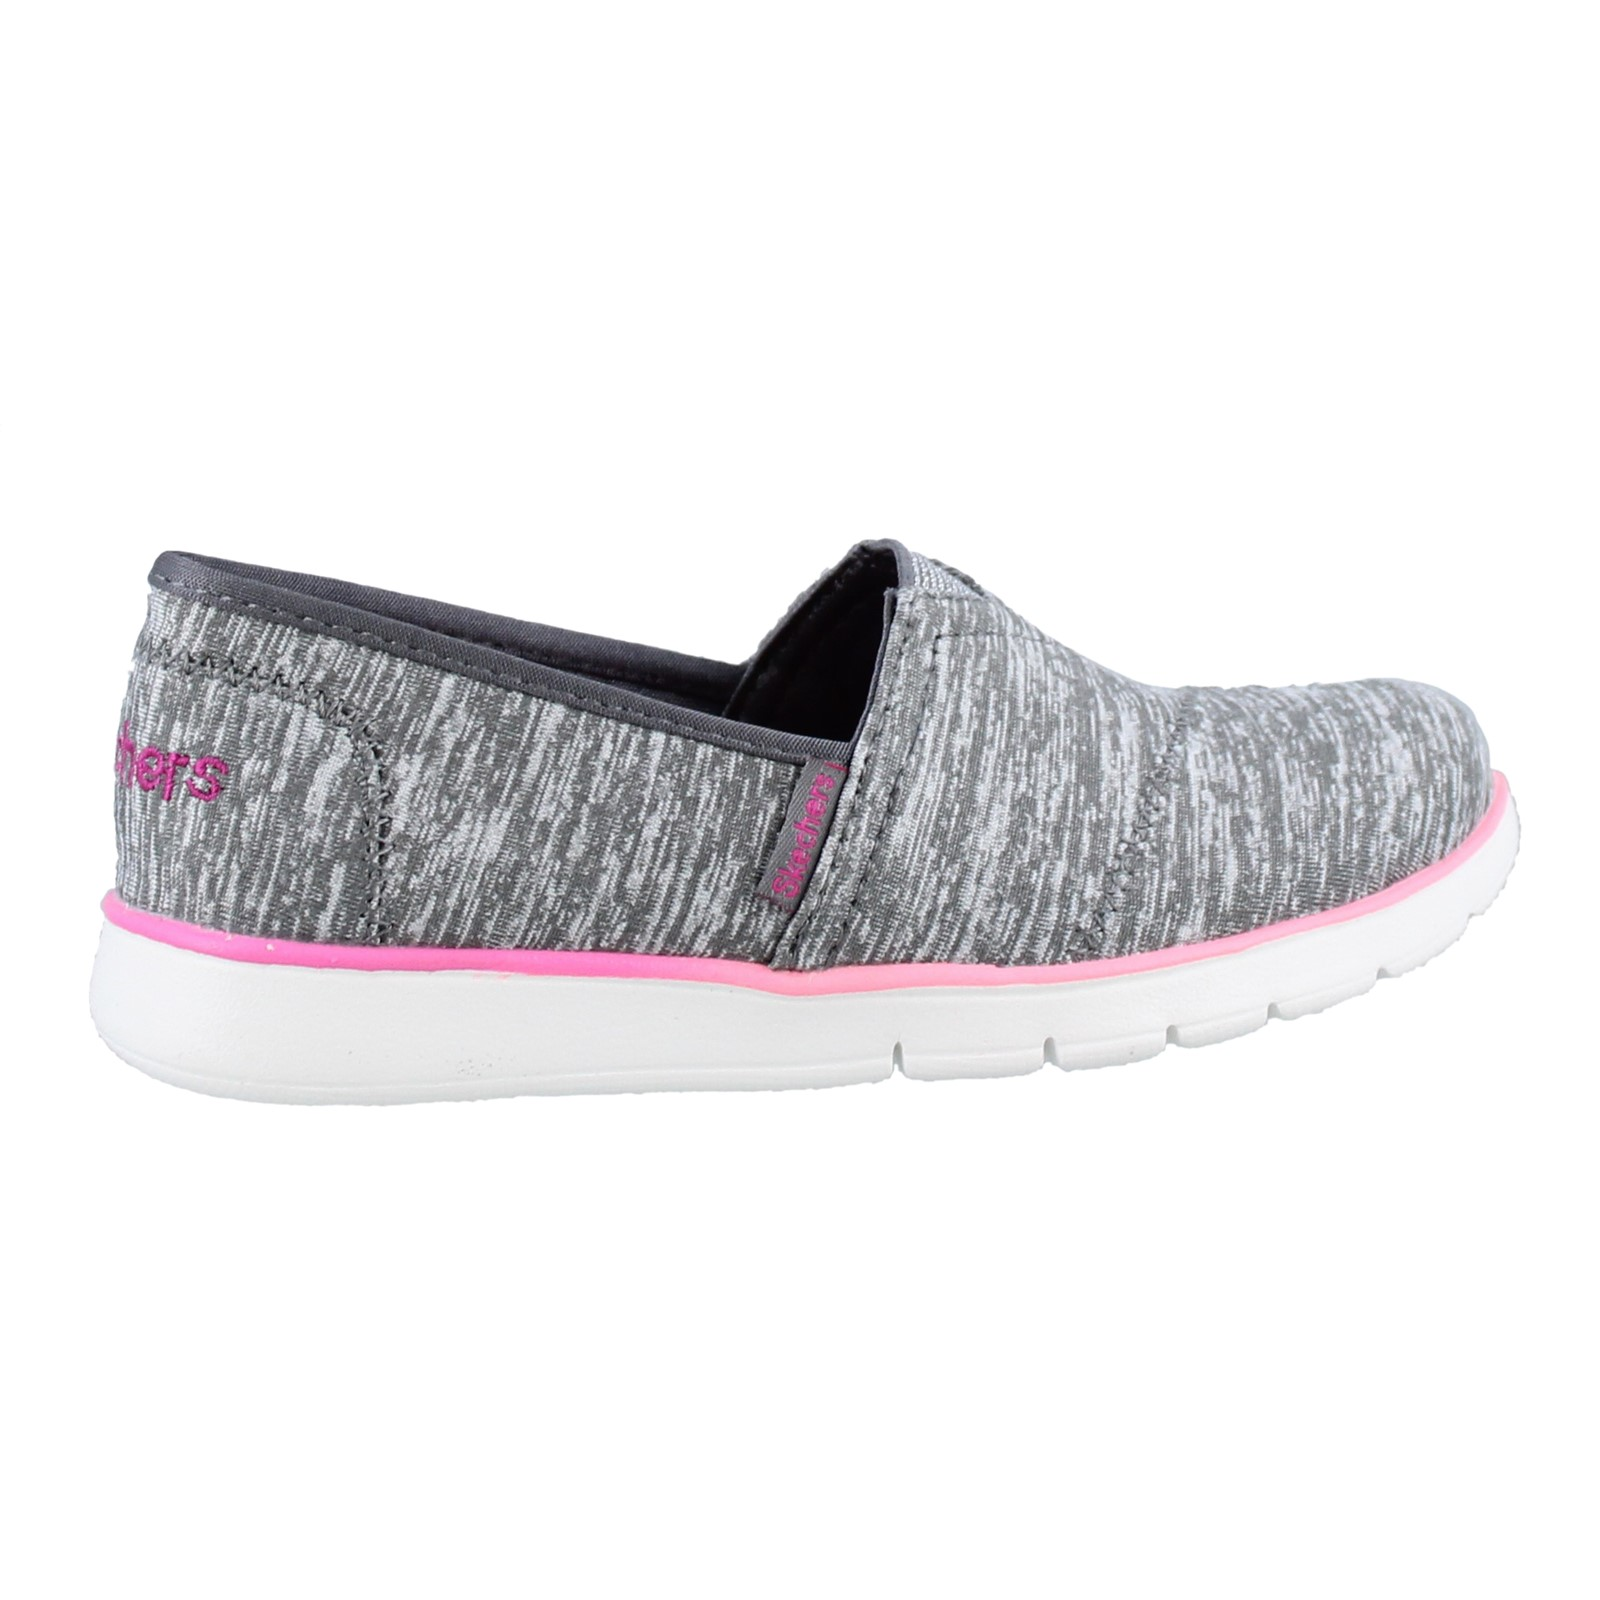 Girl's Skechers, Pureflex Jersey Joys Slip on Shoes